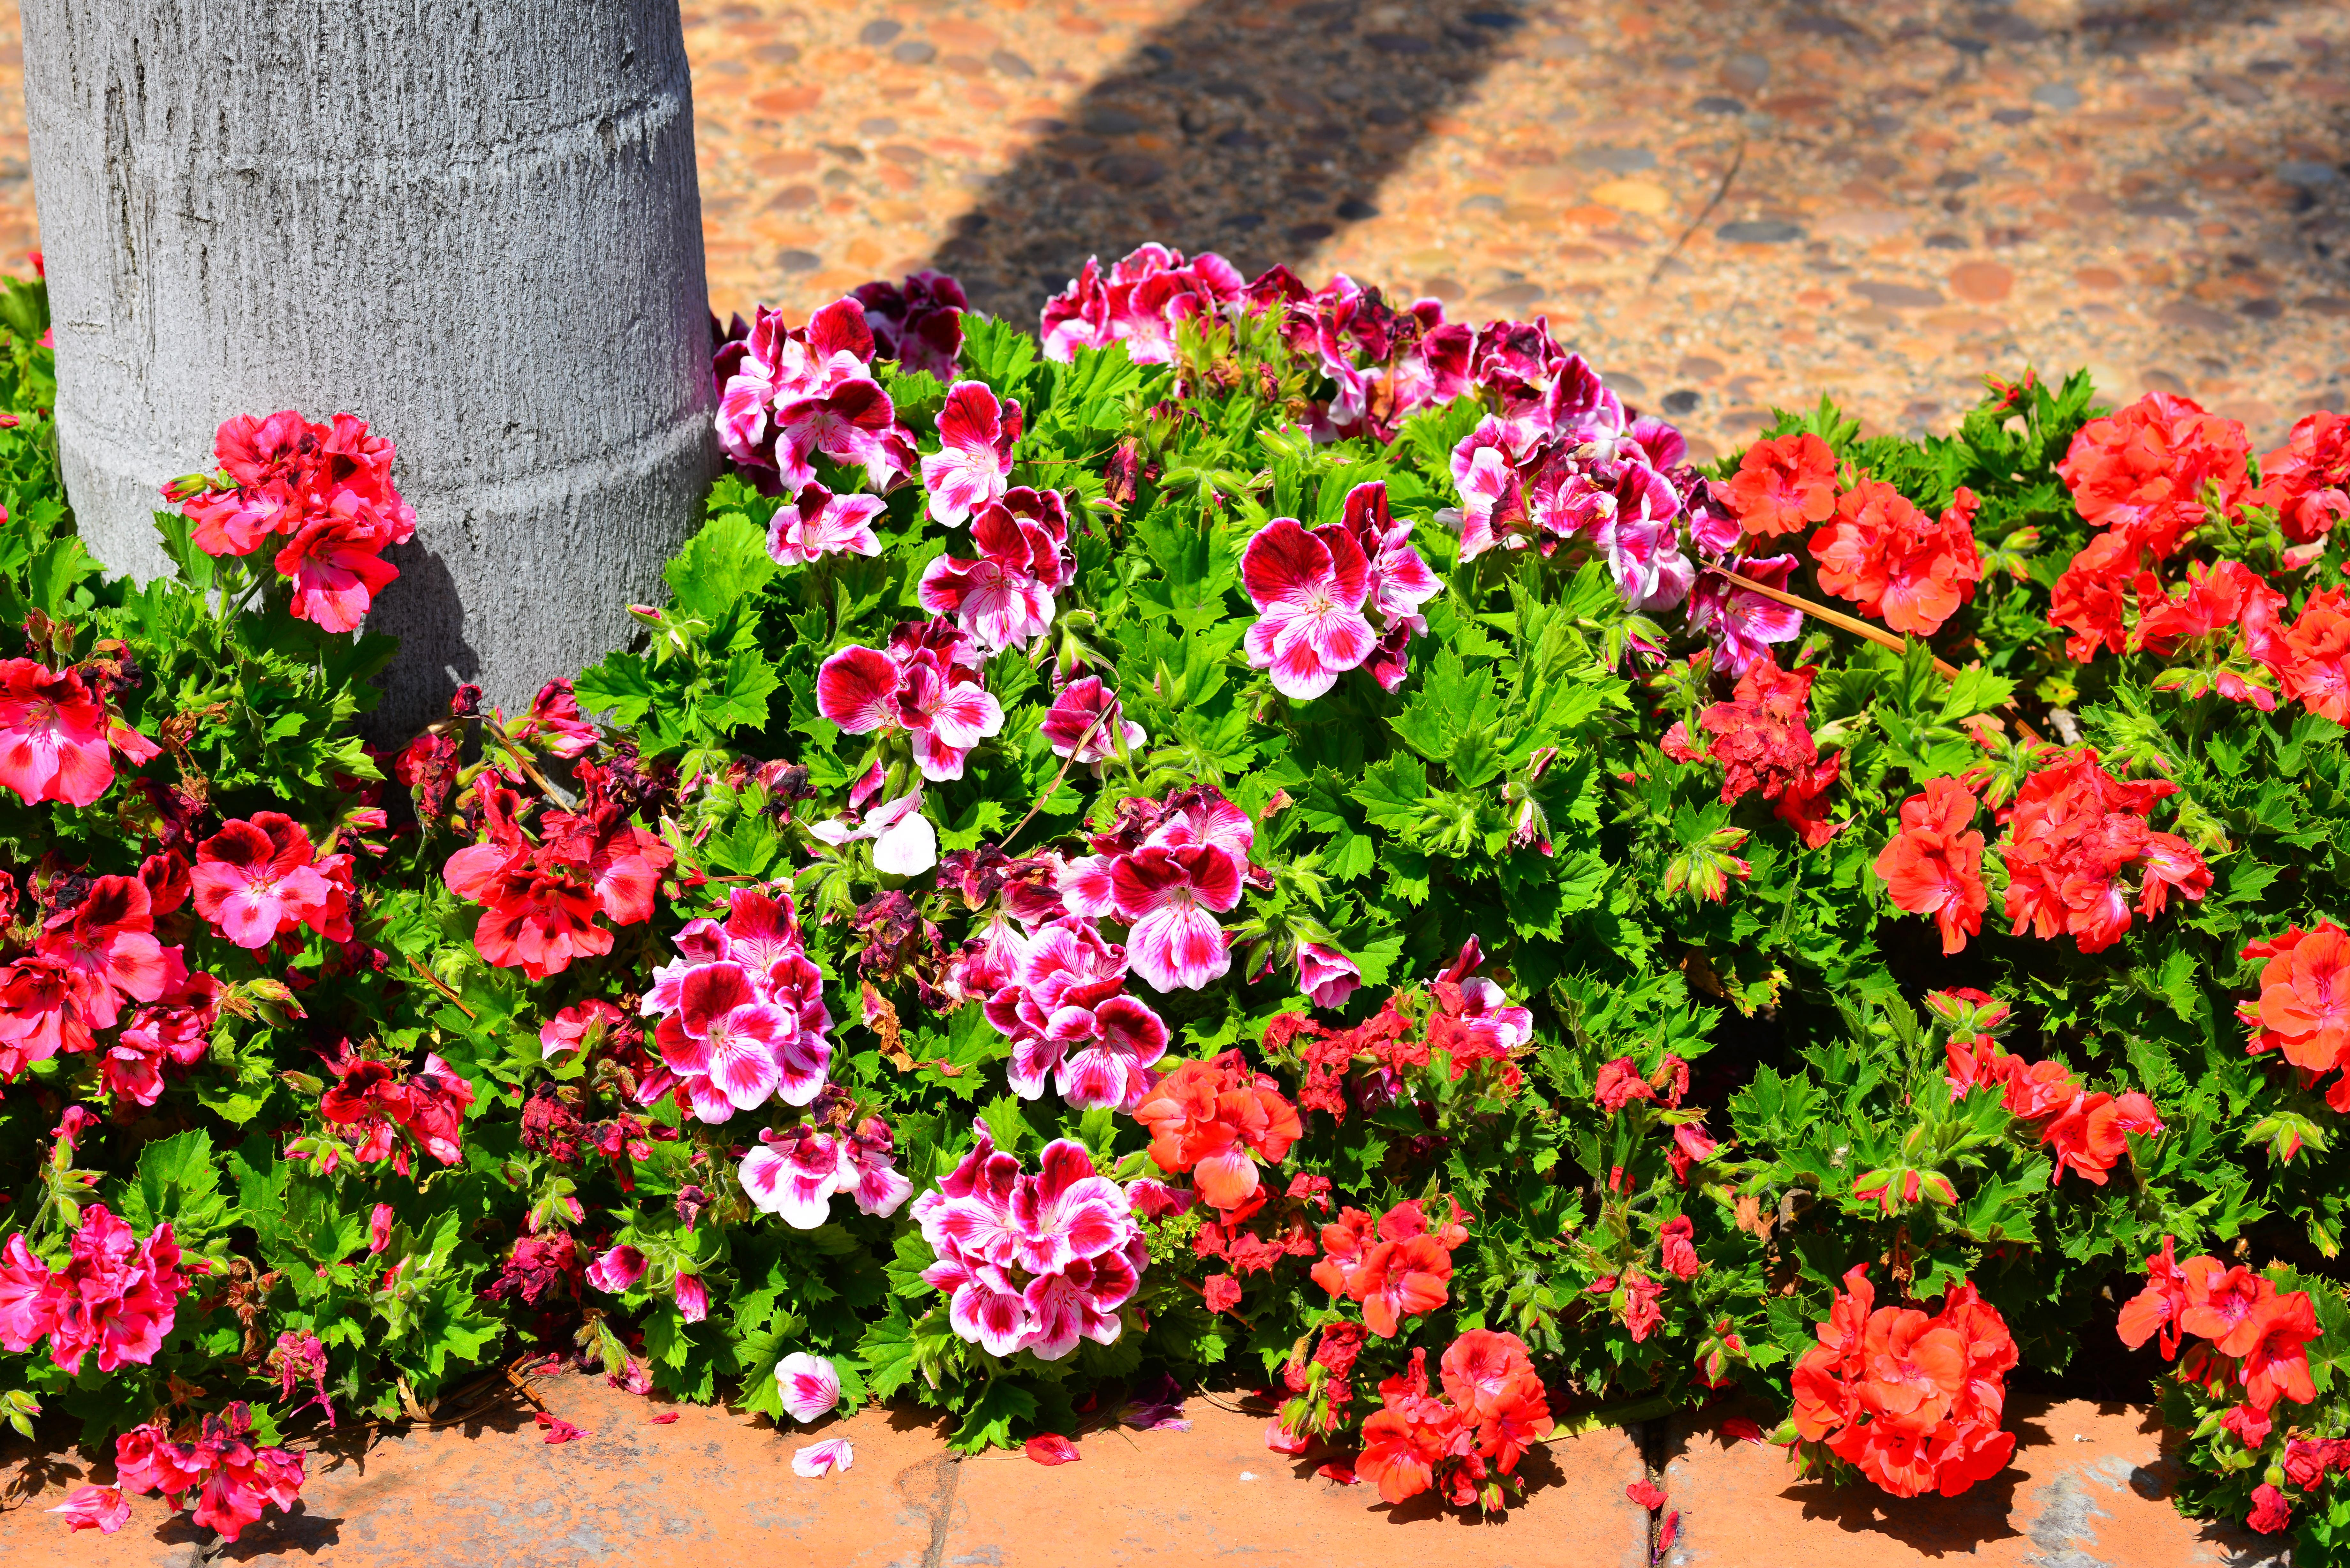 400 Pixels Wide And 150 Tall Clipart For Facebook Cover - Petunia , HD Wallpaper & Backgrounds